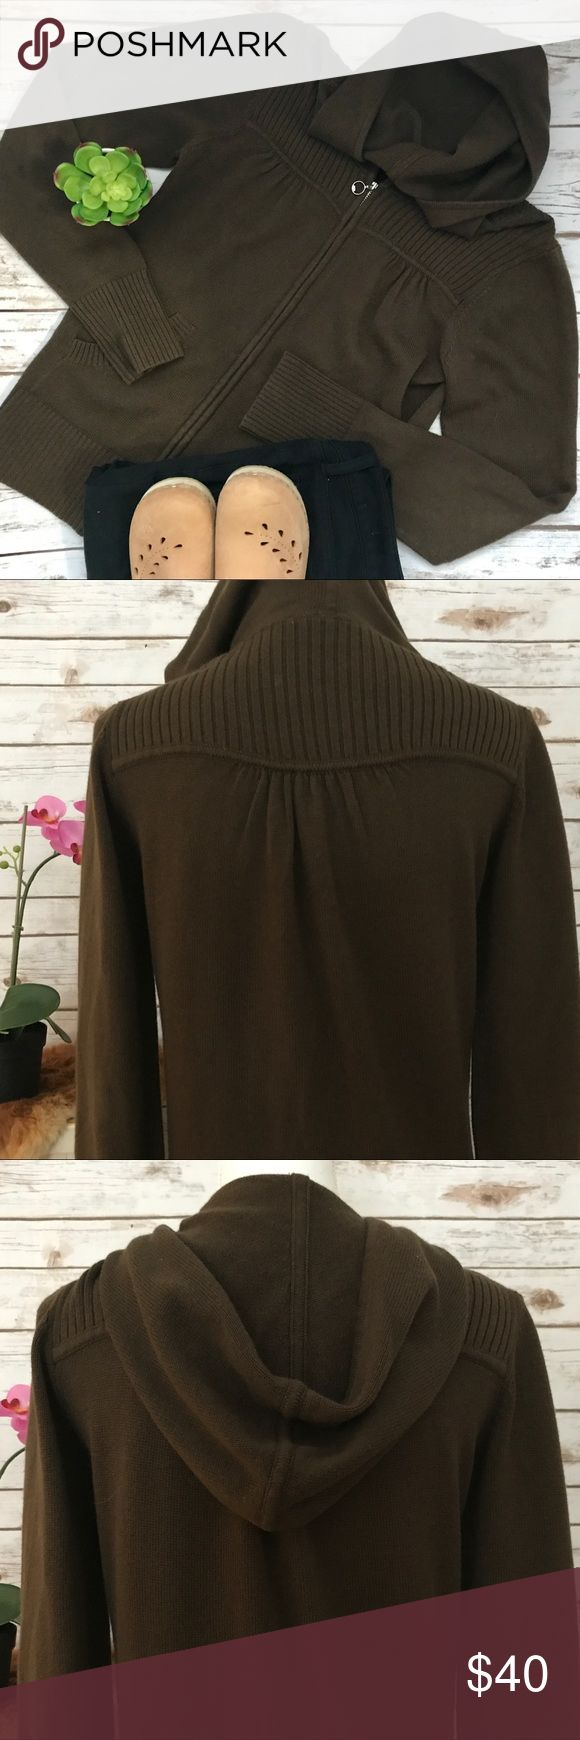 """The North face Zip up Brown Sweater Size Medium Great Condition super comfortable North Face brown zip up cardigan/hoodie.  Super feminine and cute with a gold zipper.  Zips up fully.  Length=23"""" Bust=34"""" Size Medium The North Face Sweaters Cardigans"""